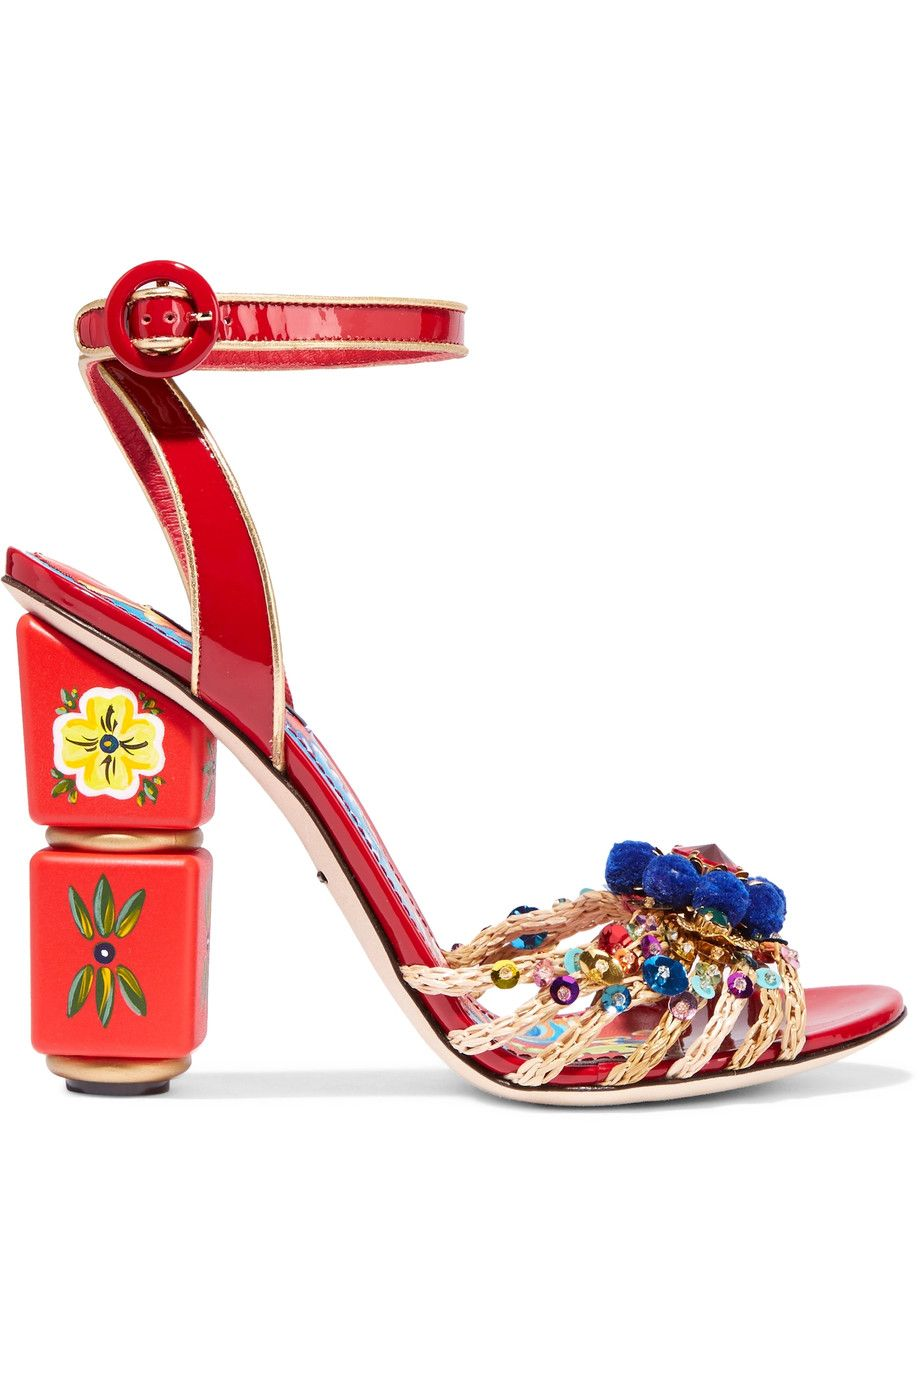 Shop onsale Dolce  Gabbana Embellished woven jute and patentleather  sandals Browse other discount designer Sandals  more on The Most  Fashionable